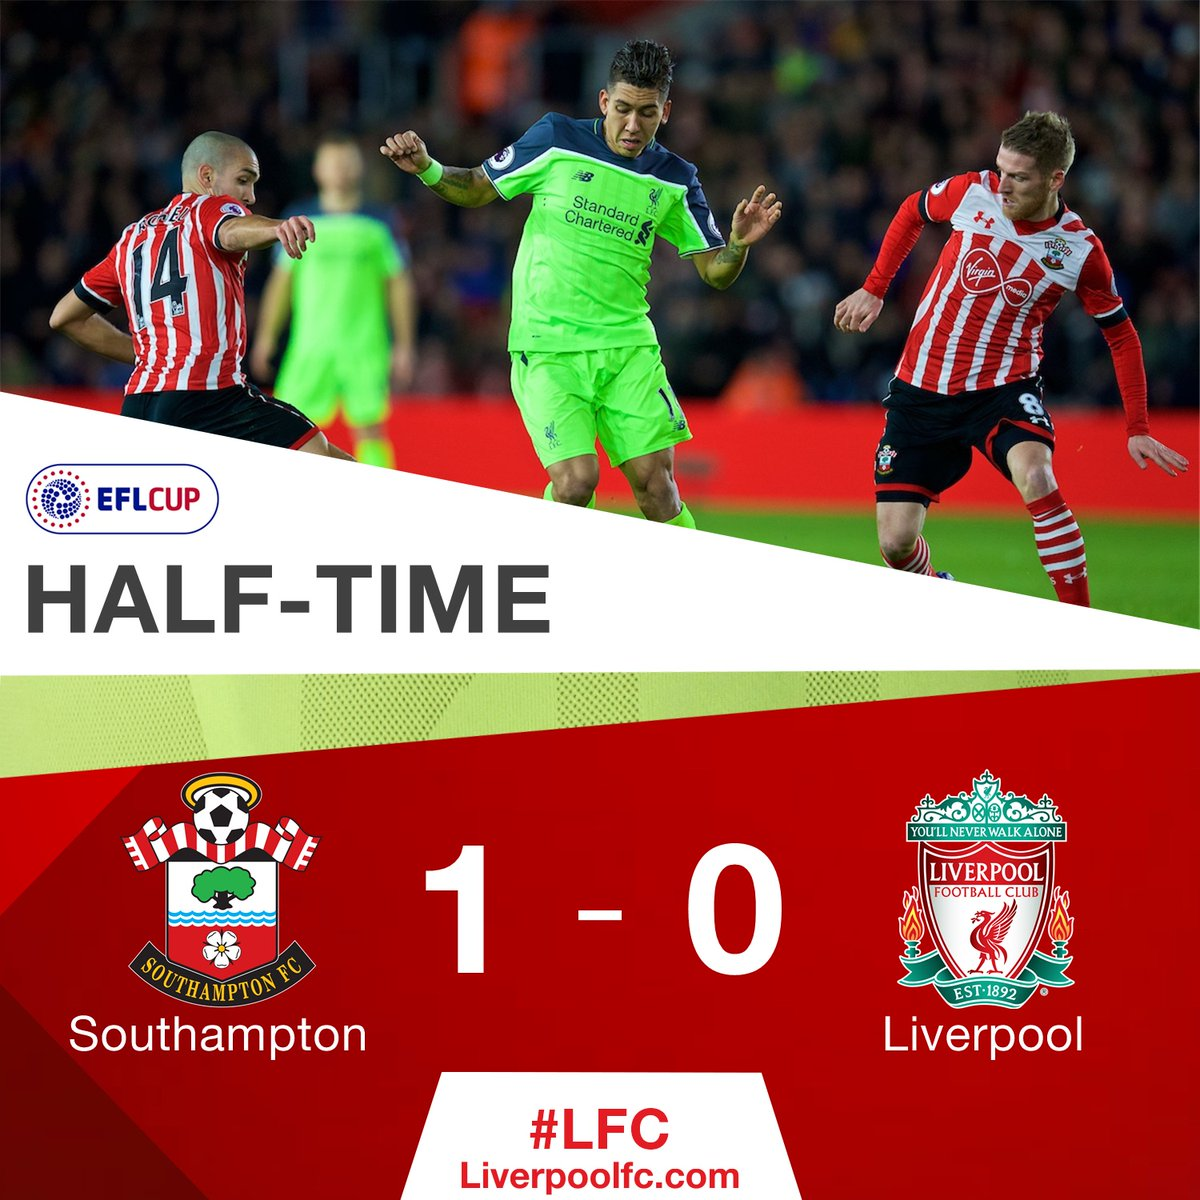 45 - HALF TIME [1-0] https://t.co/BQVc2PIZsi #LFCIndonesia https://t.c...